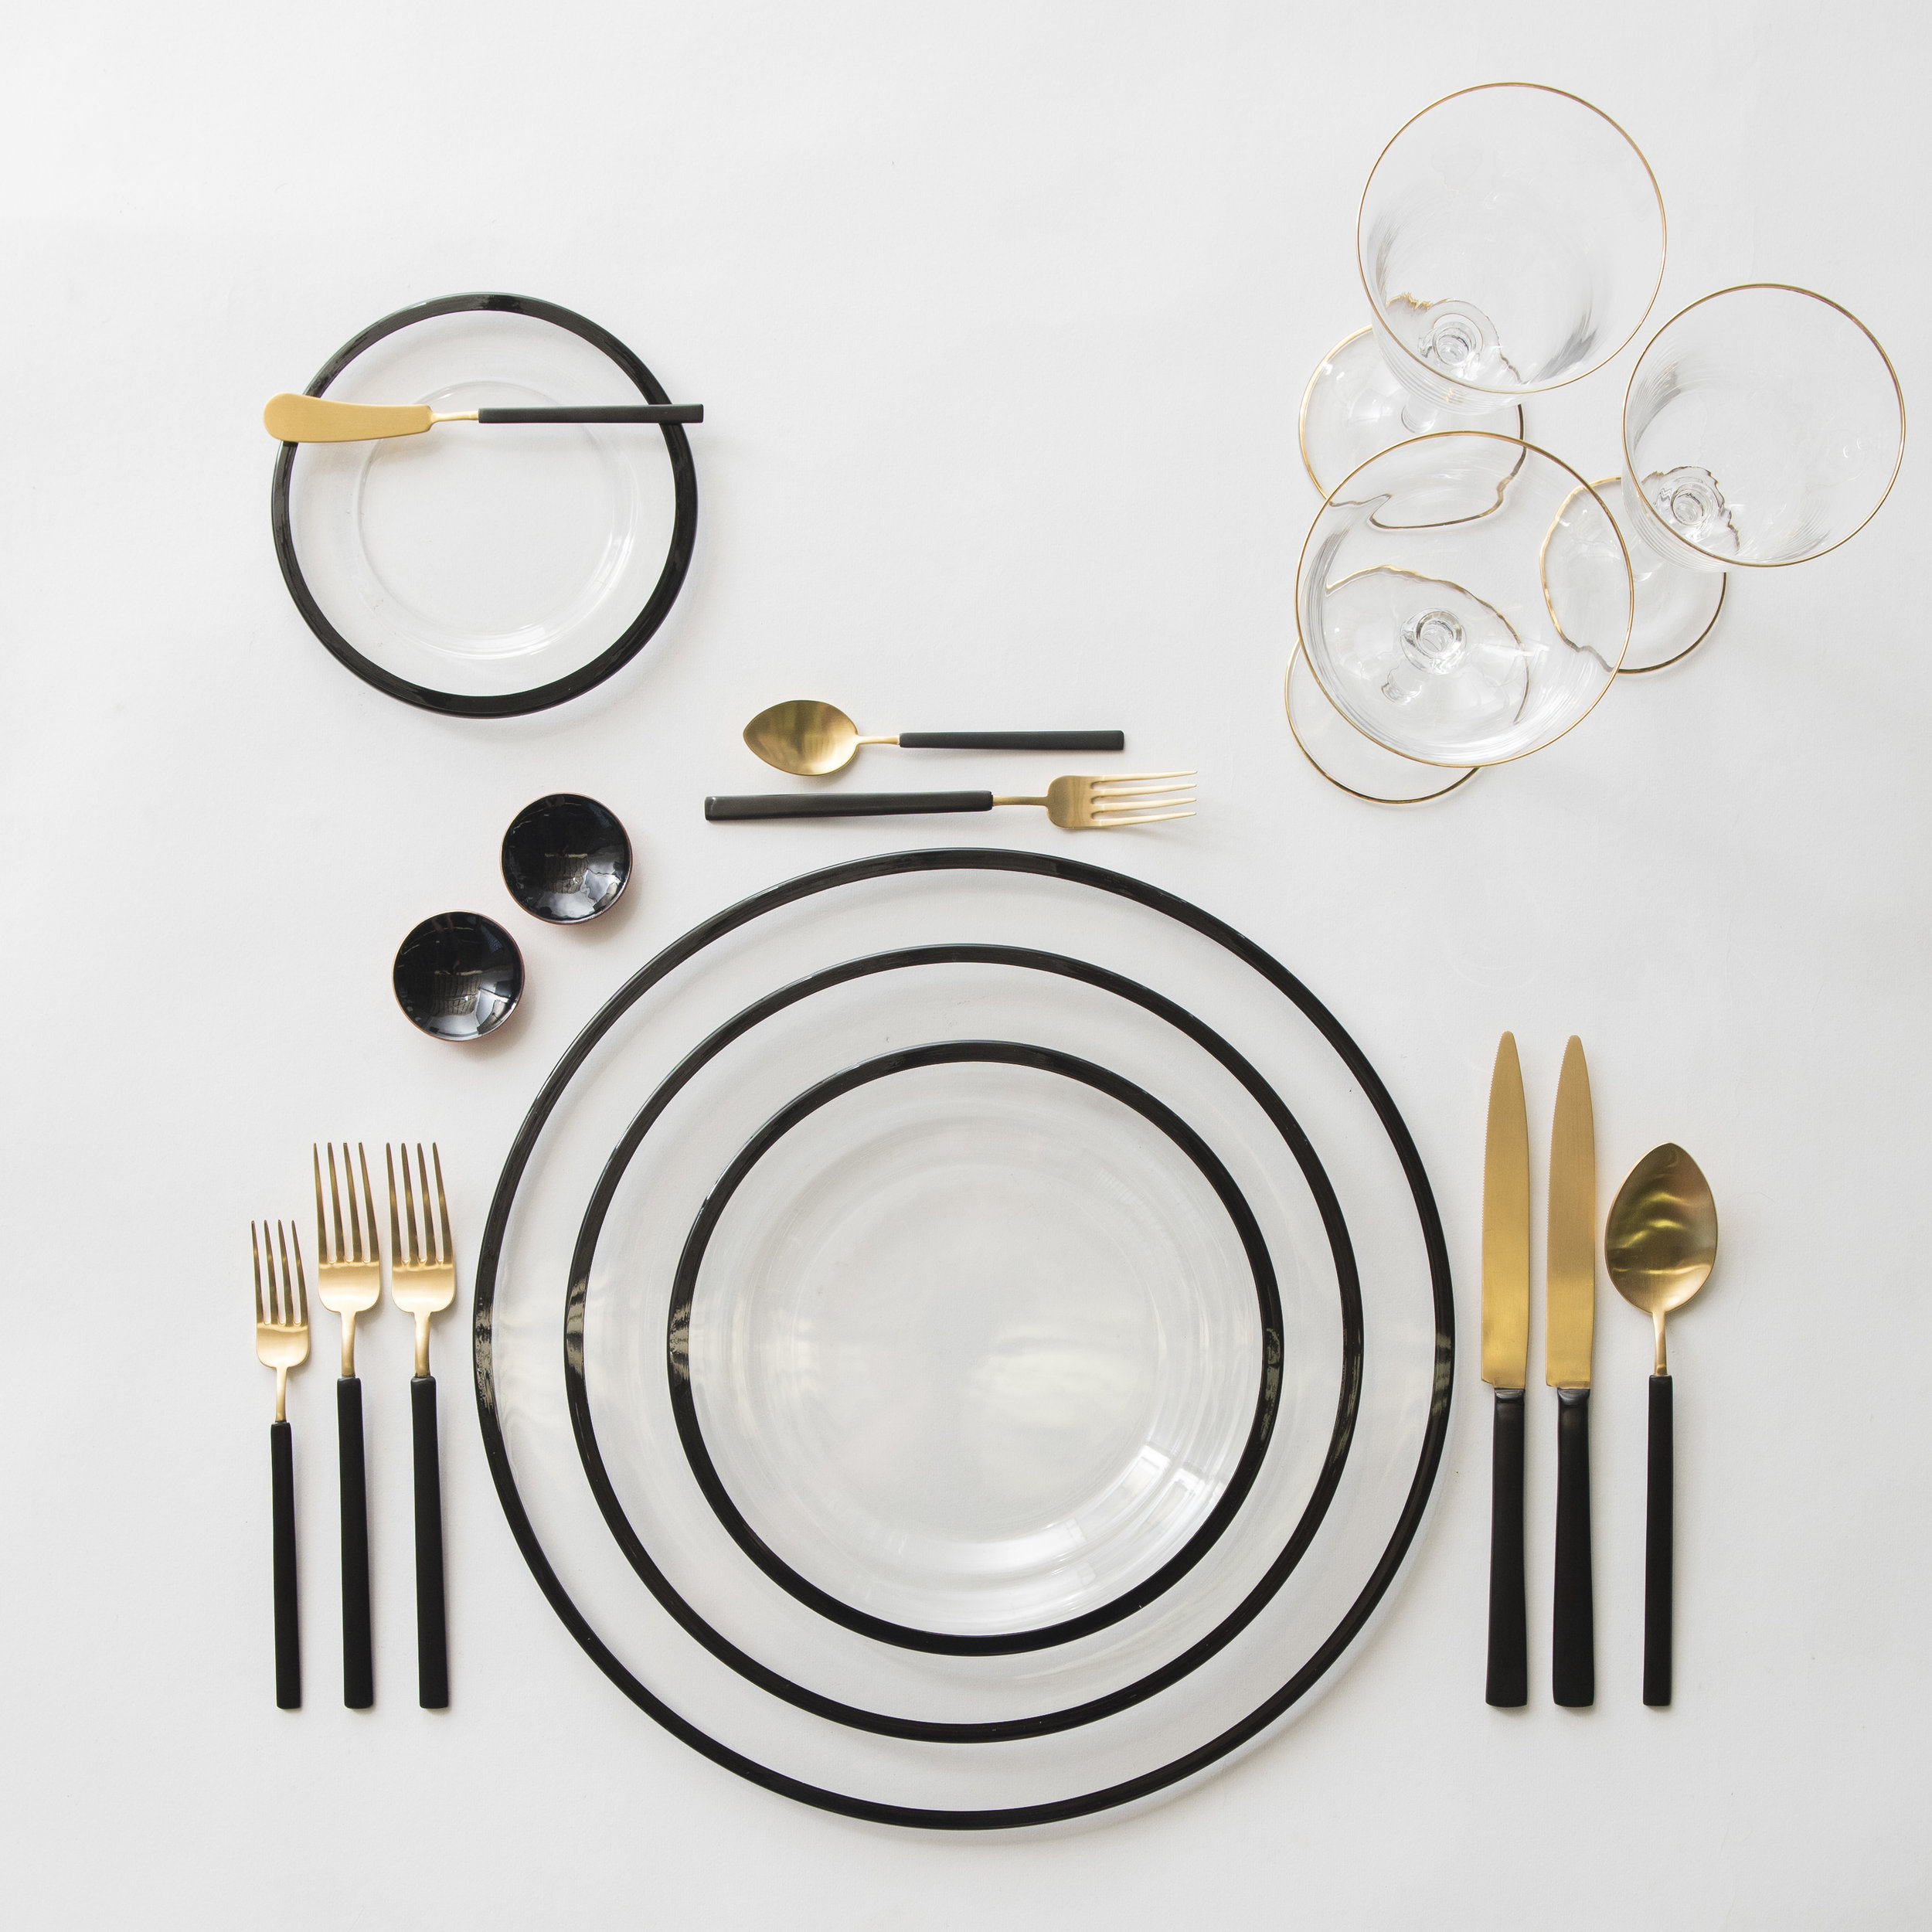 RENT: Halo Glass Chargers/Dinnerware in Black + Axel Flatware in Matte 24k Gold/Black + Chloe 24k Gold Rimmed Stemware + Black Enamel Salt Cellars + Tiny Gold Spoons  SHOP: Halo Glass Chargers/Dinnerware in Black + Chloe 24k Gold Rimmed Stemware + Black Enamel Salt Cellars + Tiny Gold Spoons